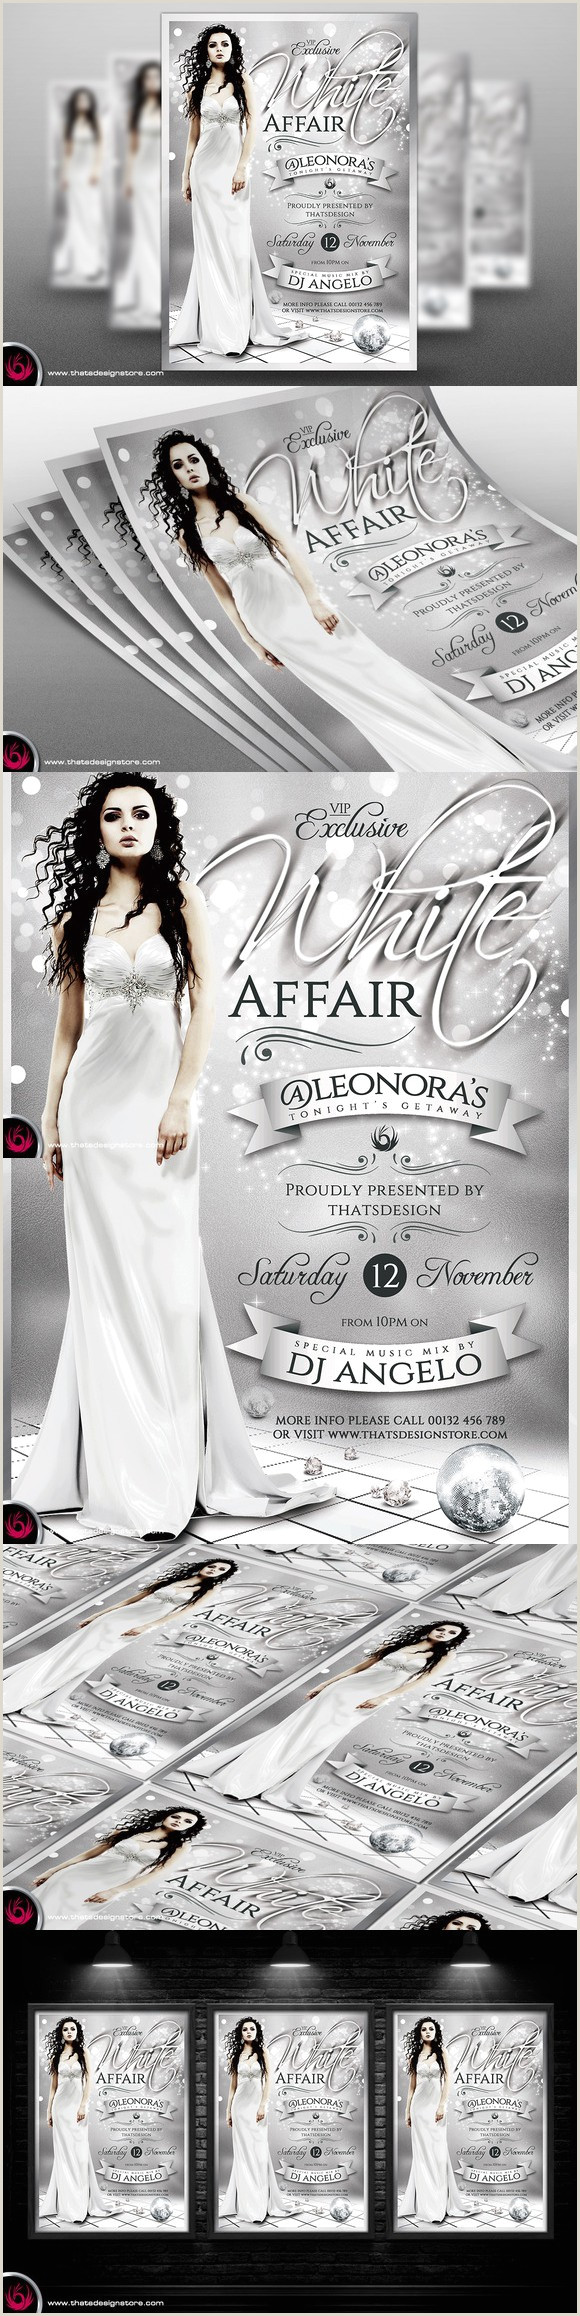 White Party Flyer White Party Flyer Template V2 Flyer Templates $9 00